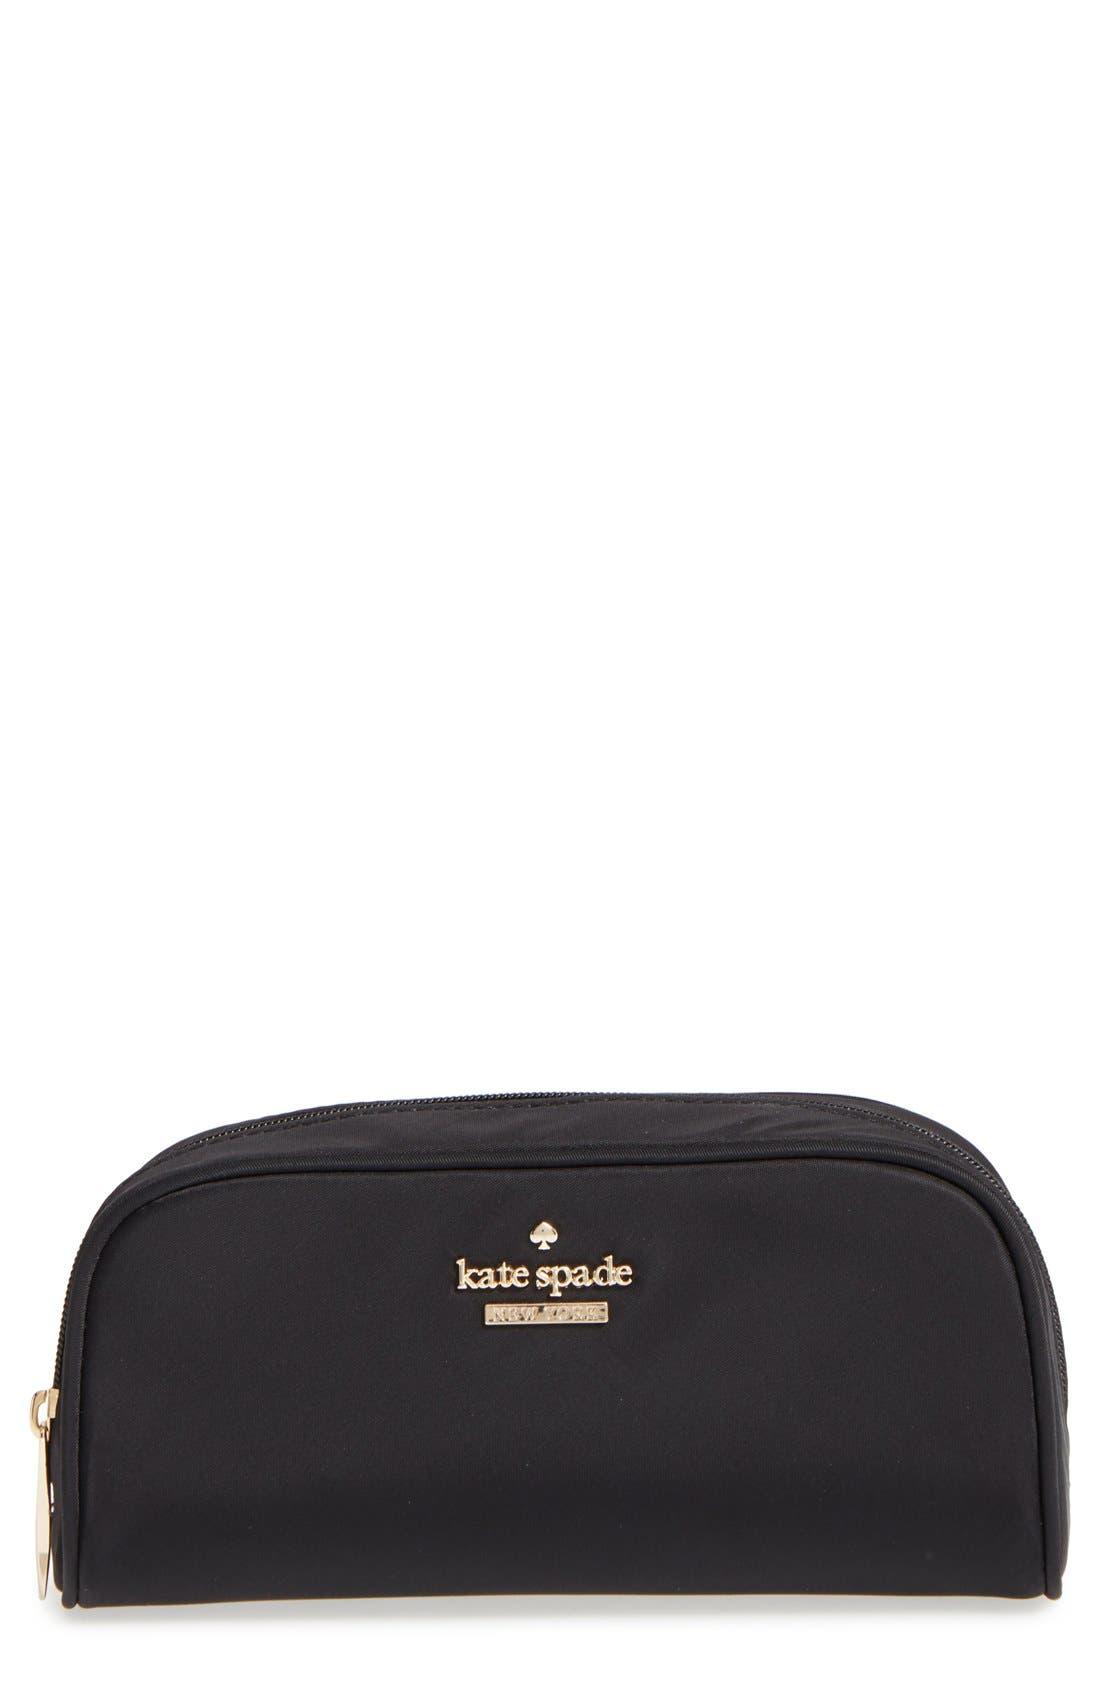 kate spade new york 'classic berrie' floral cosmetics case